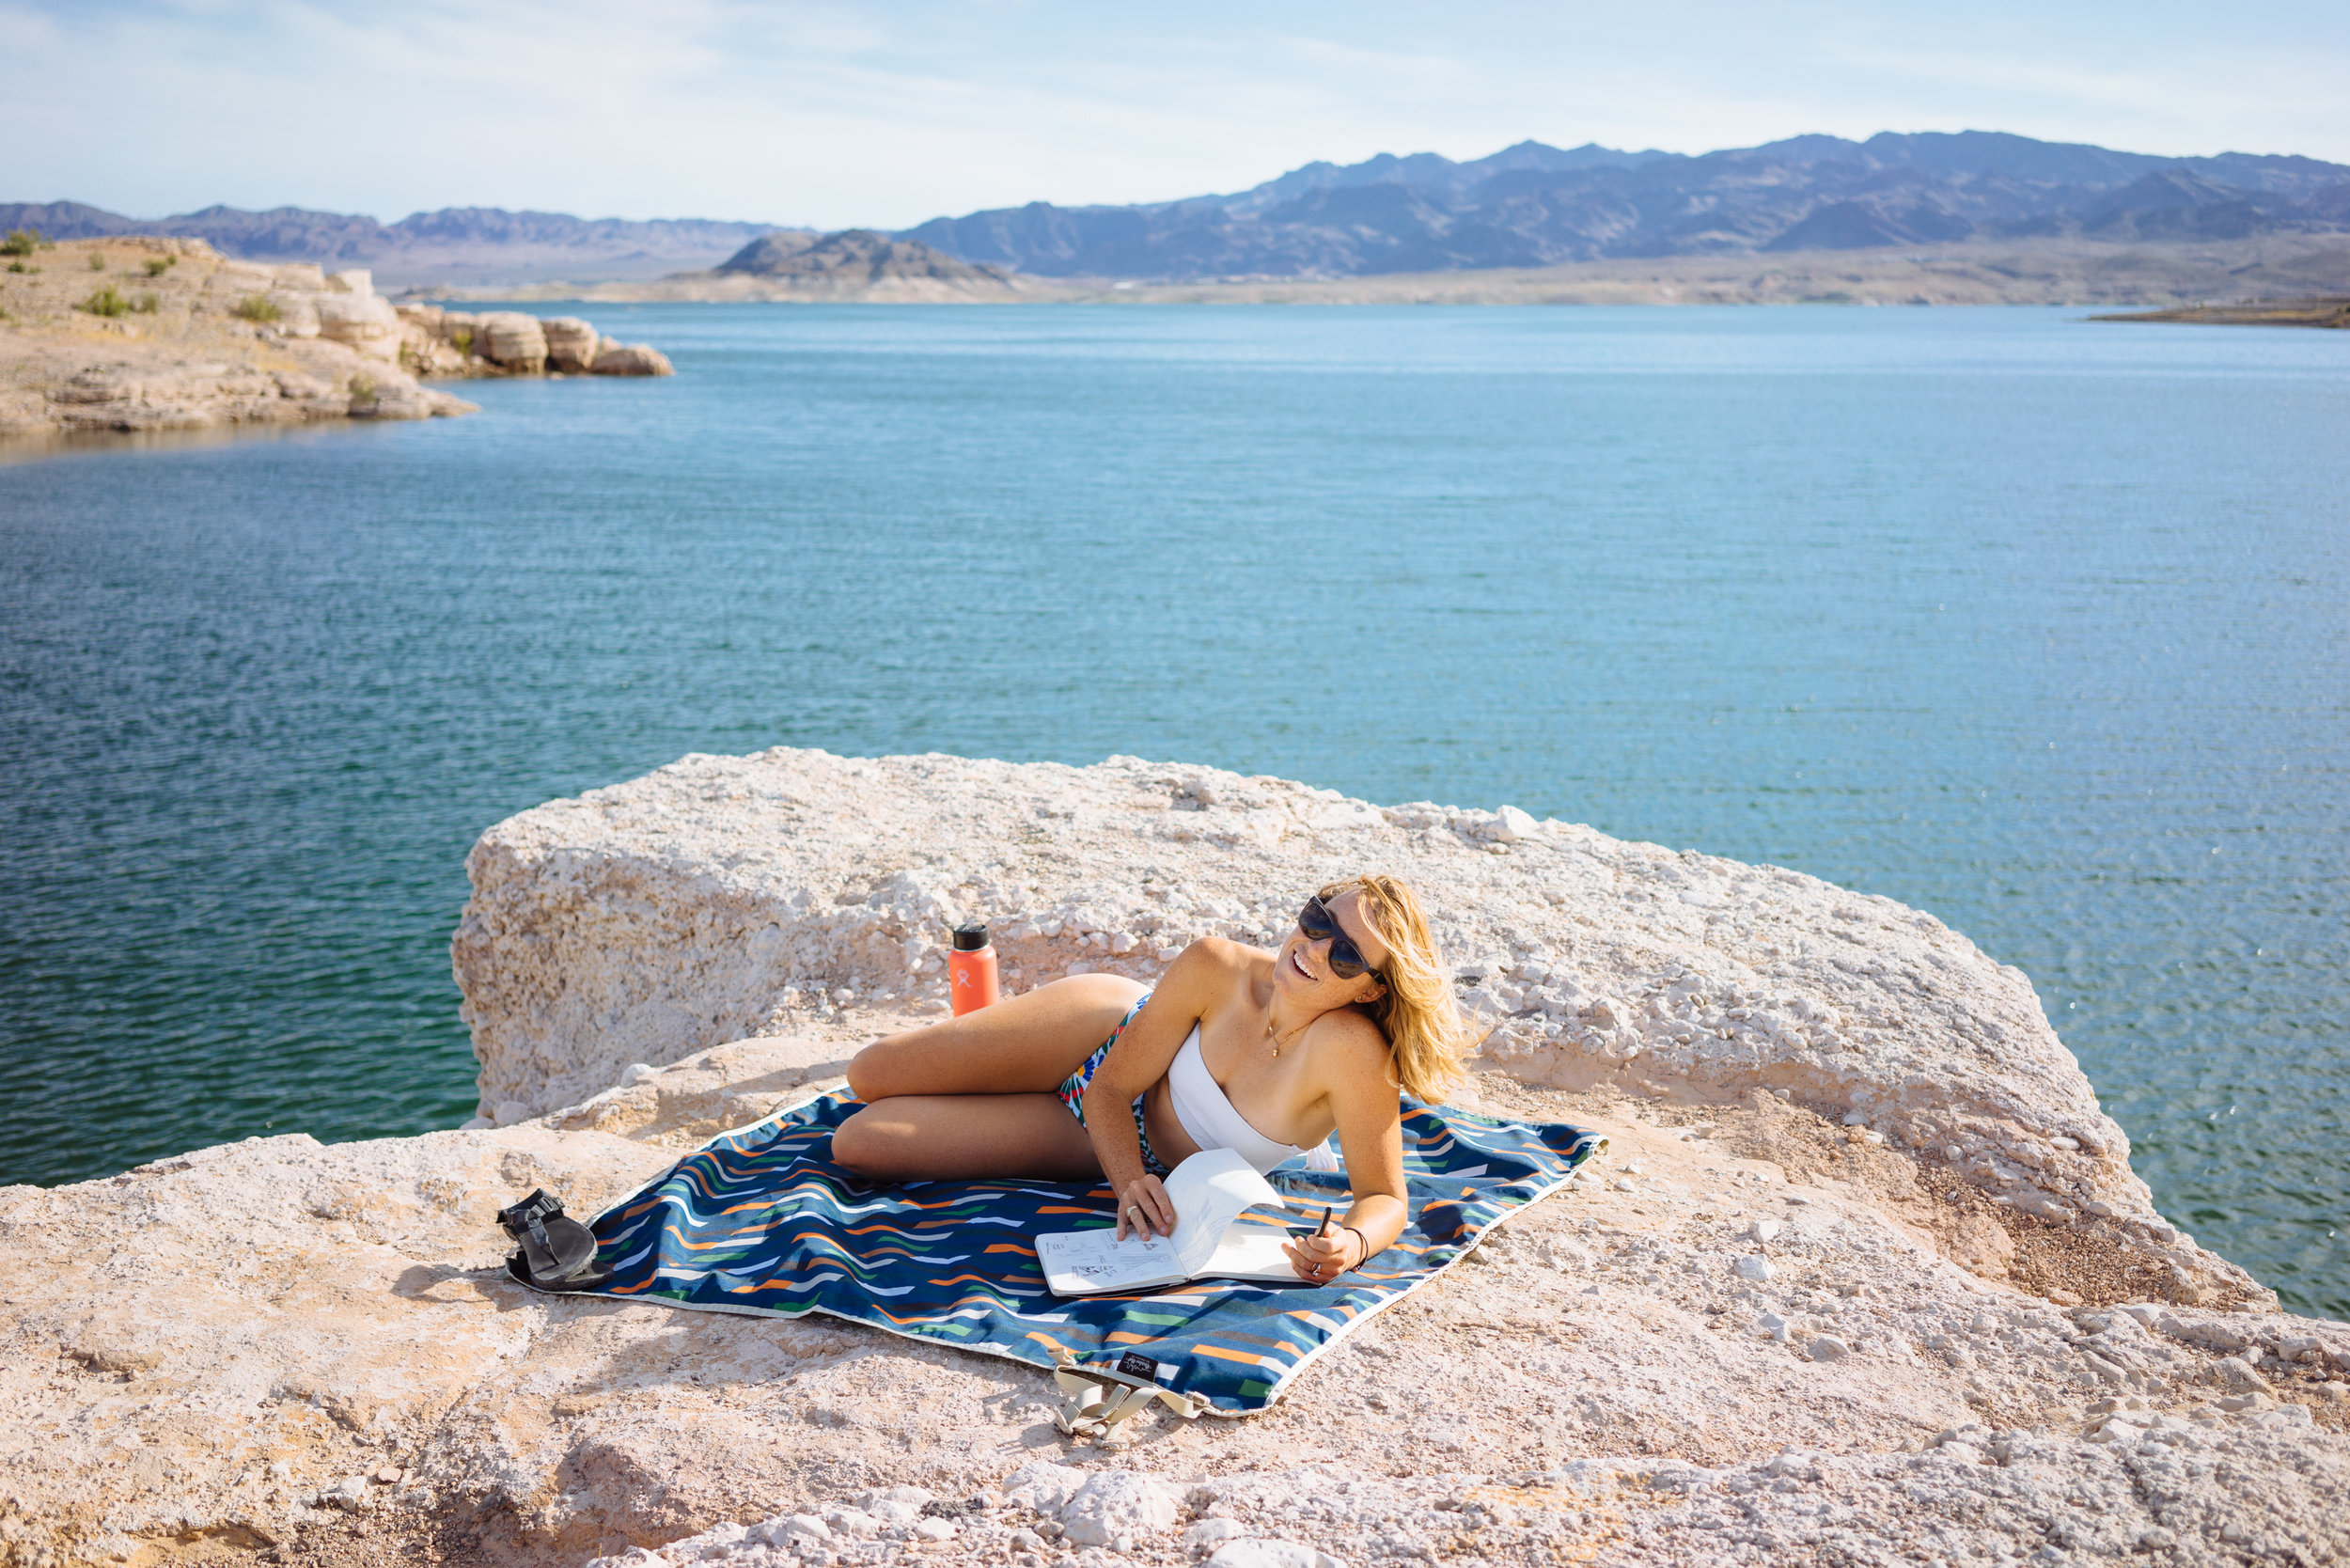 Working/sunning at Lake Mead